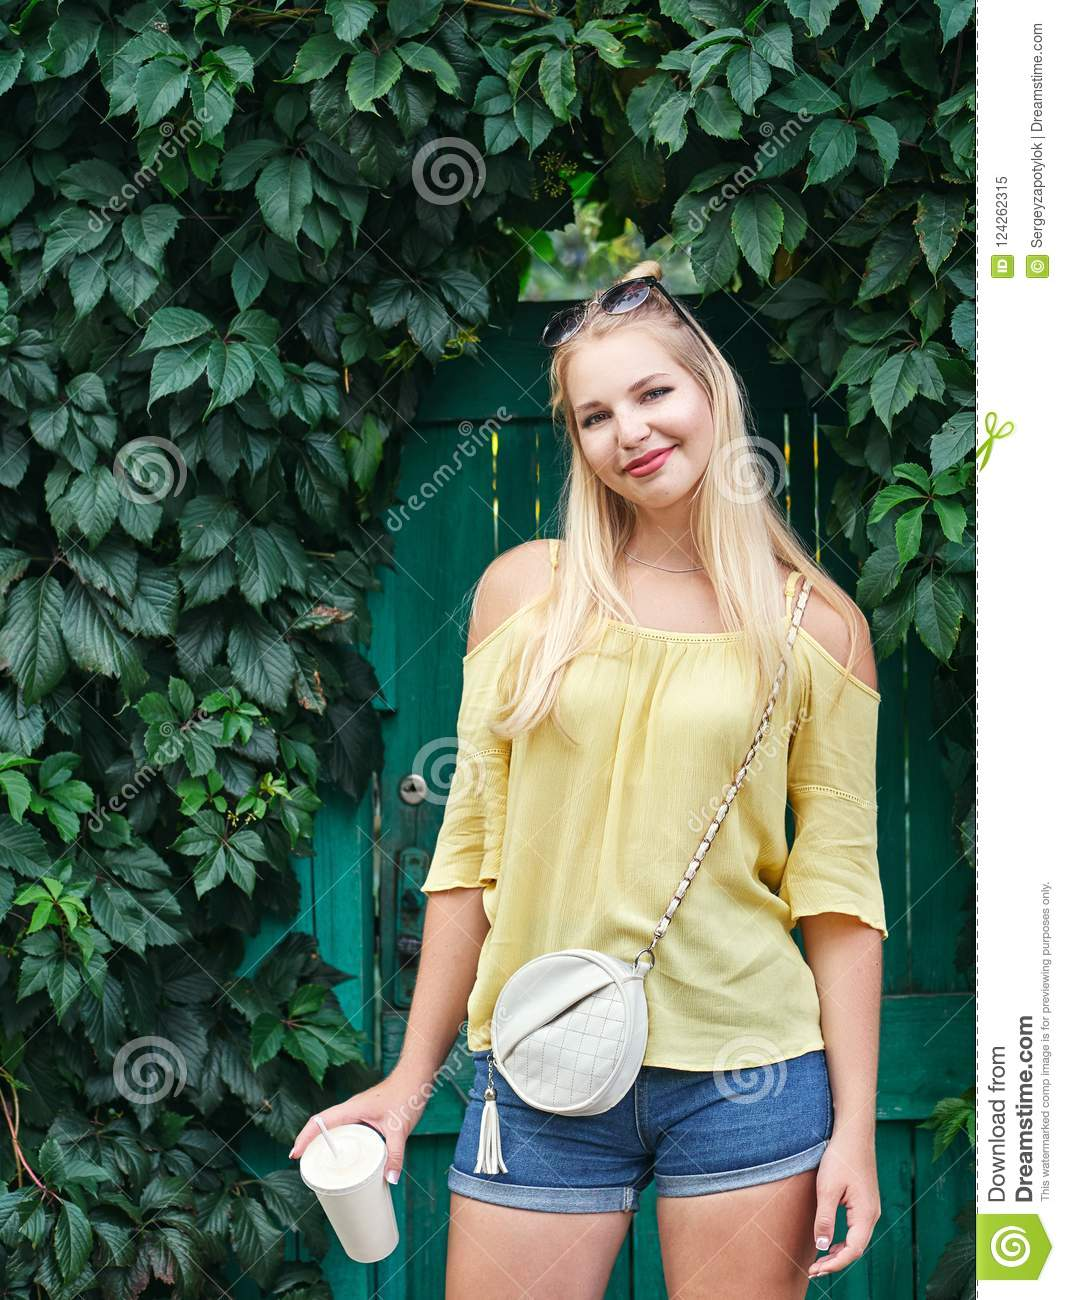 Outdoors Portrait Of Young Beautiful Blonde Woman With High Bun